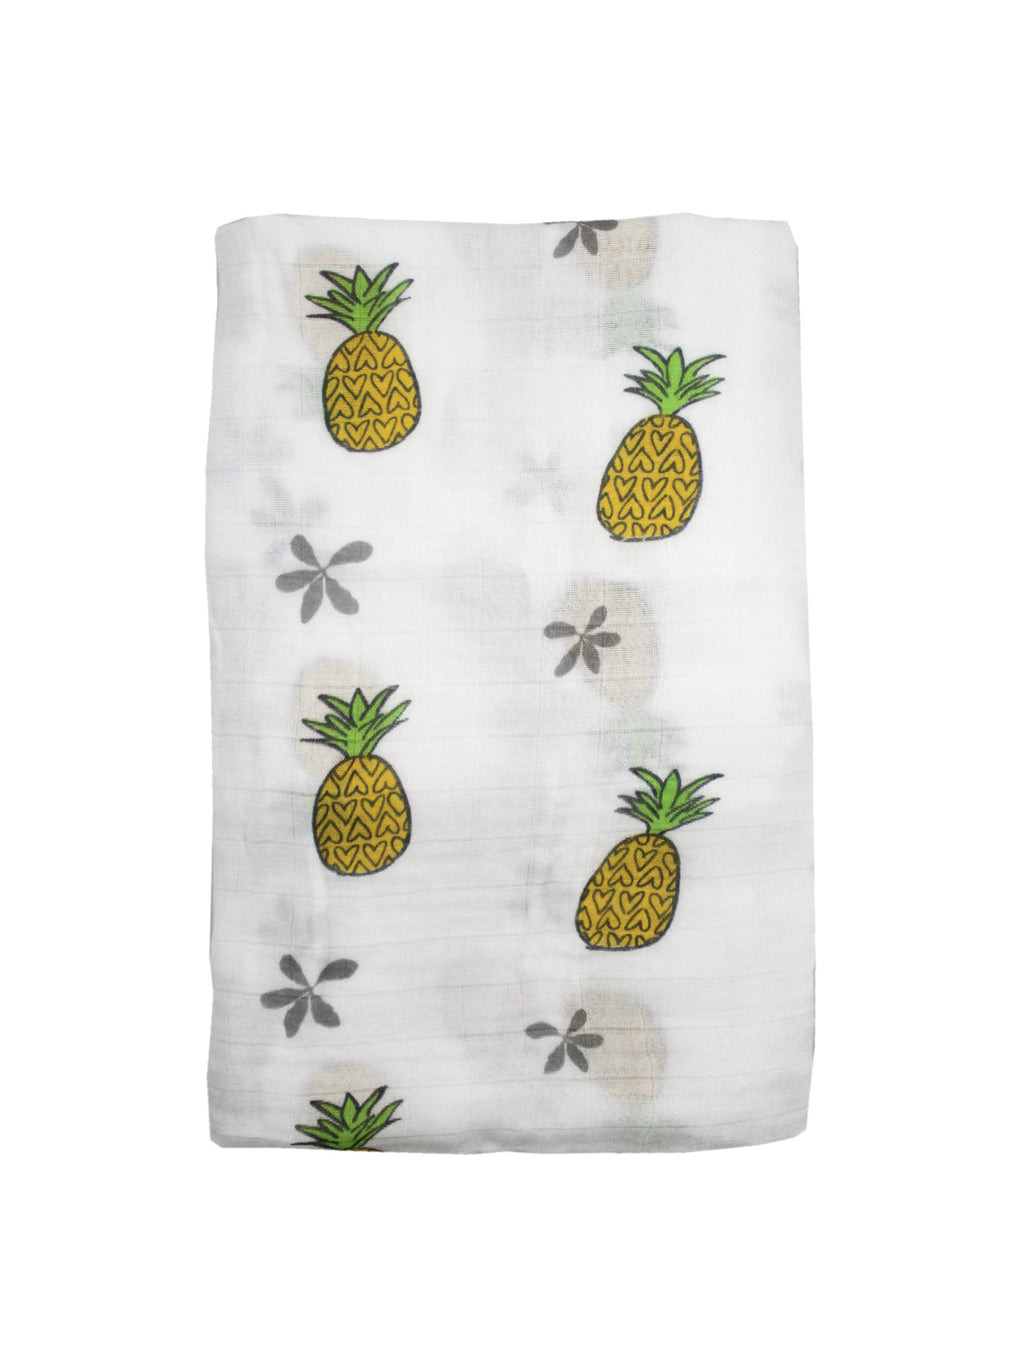 COCO MOON Swaddle Blanket | Pineapple of my eye